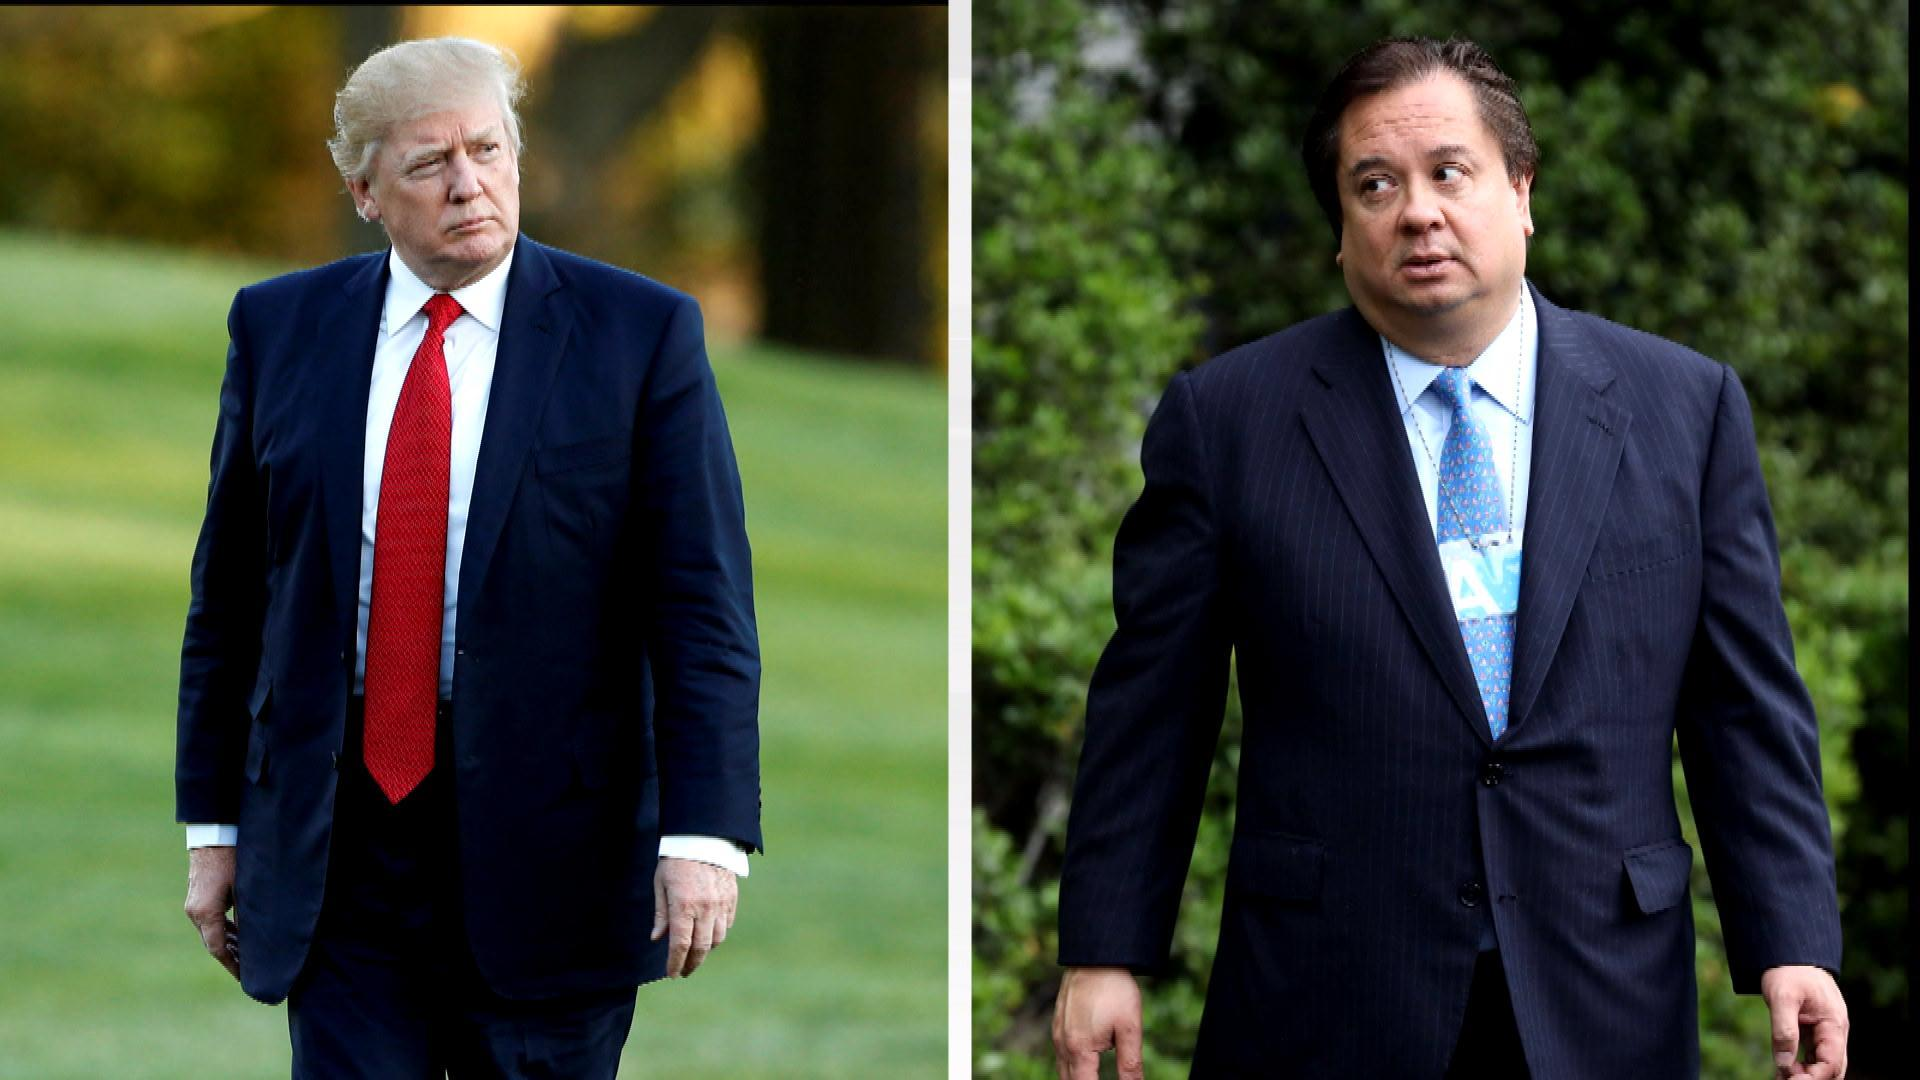 'Husband from hell!' Trump blasts George Conway, who responds: 'You. Are. Nuts'